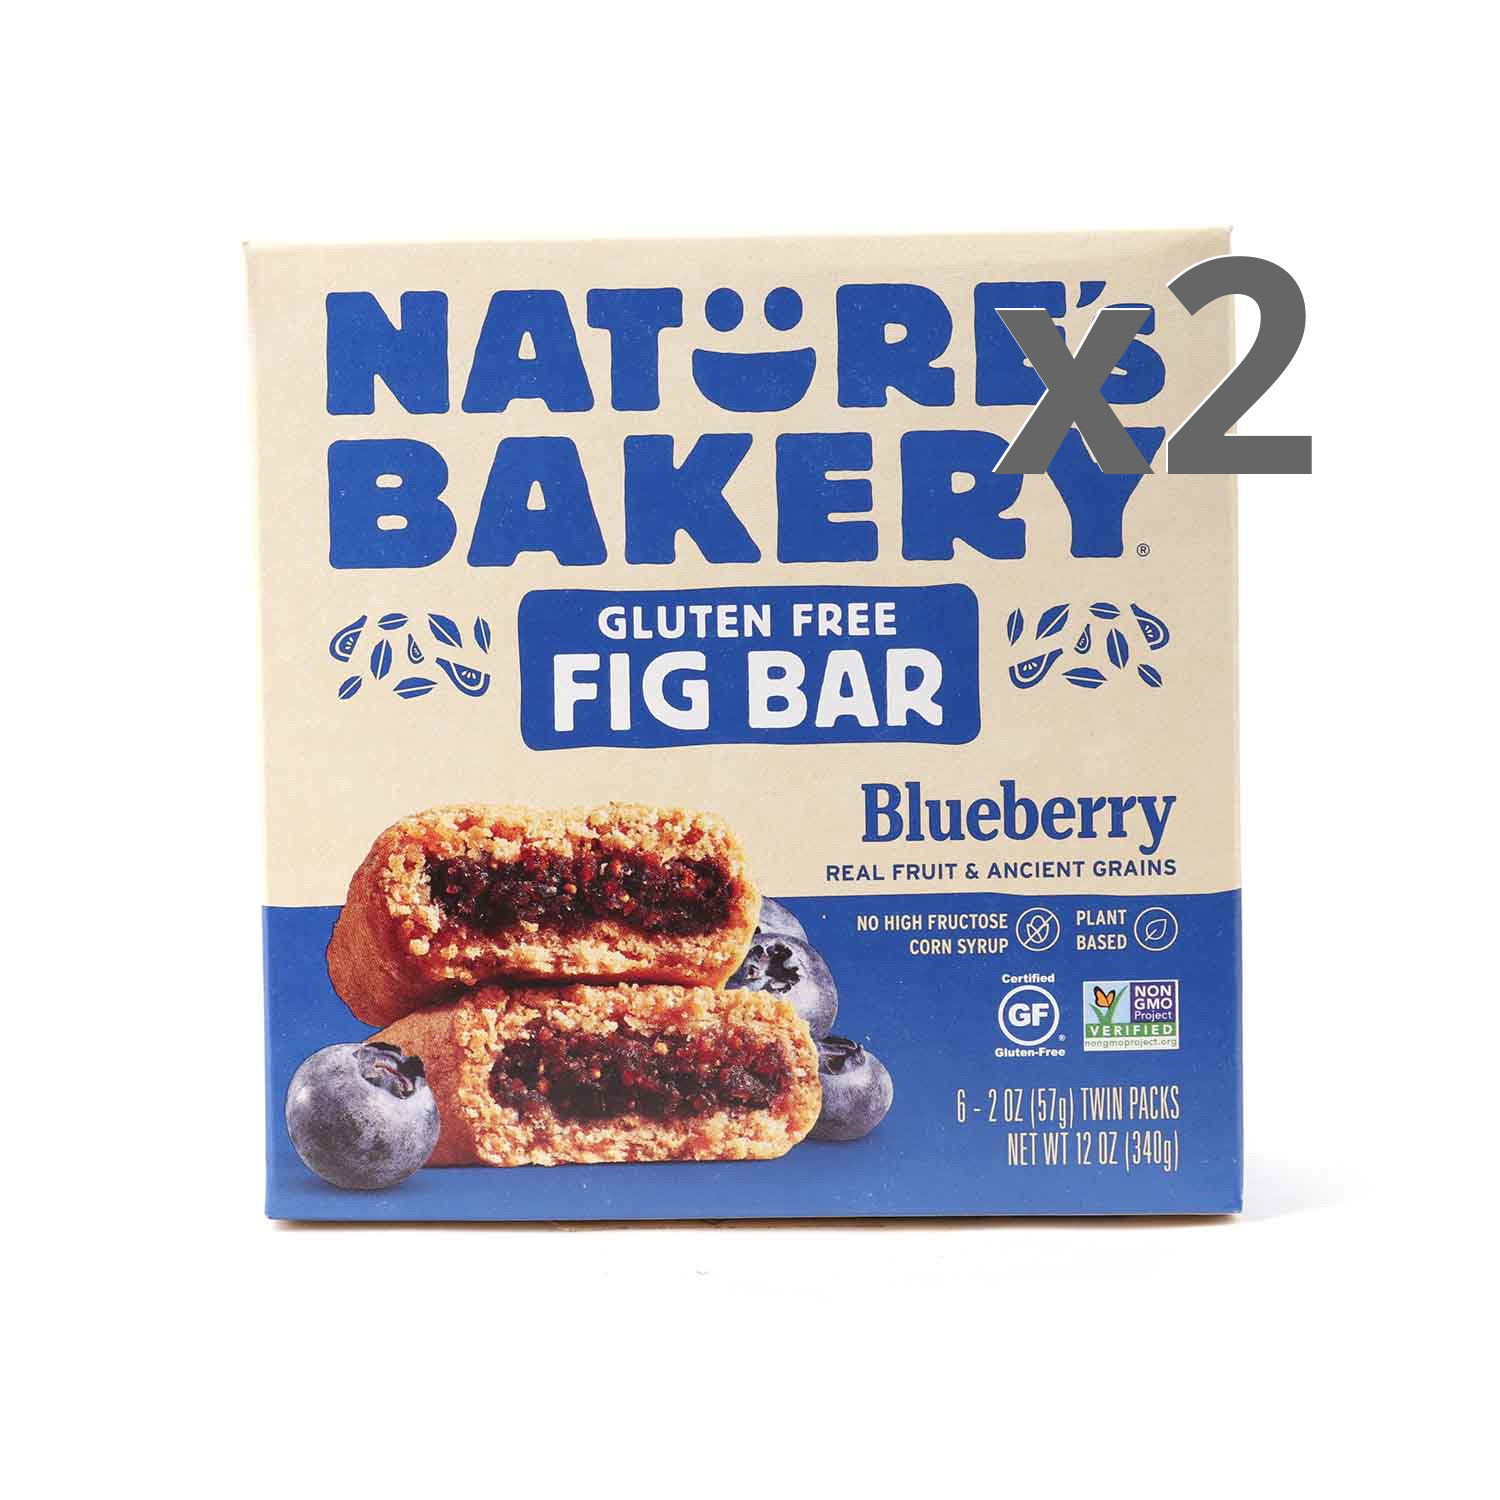 Nature's Bakery Gluten Free Blueberry 2-Pack